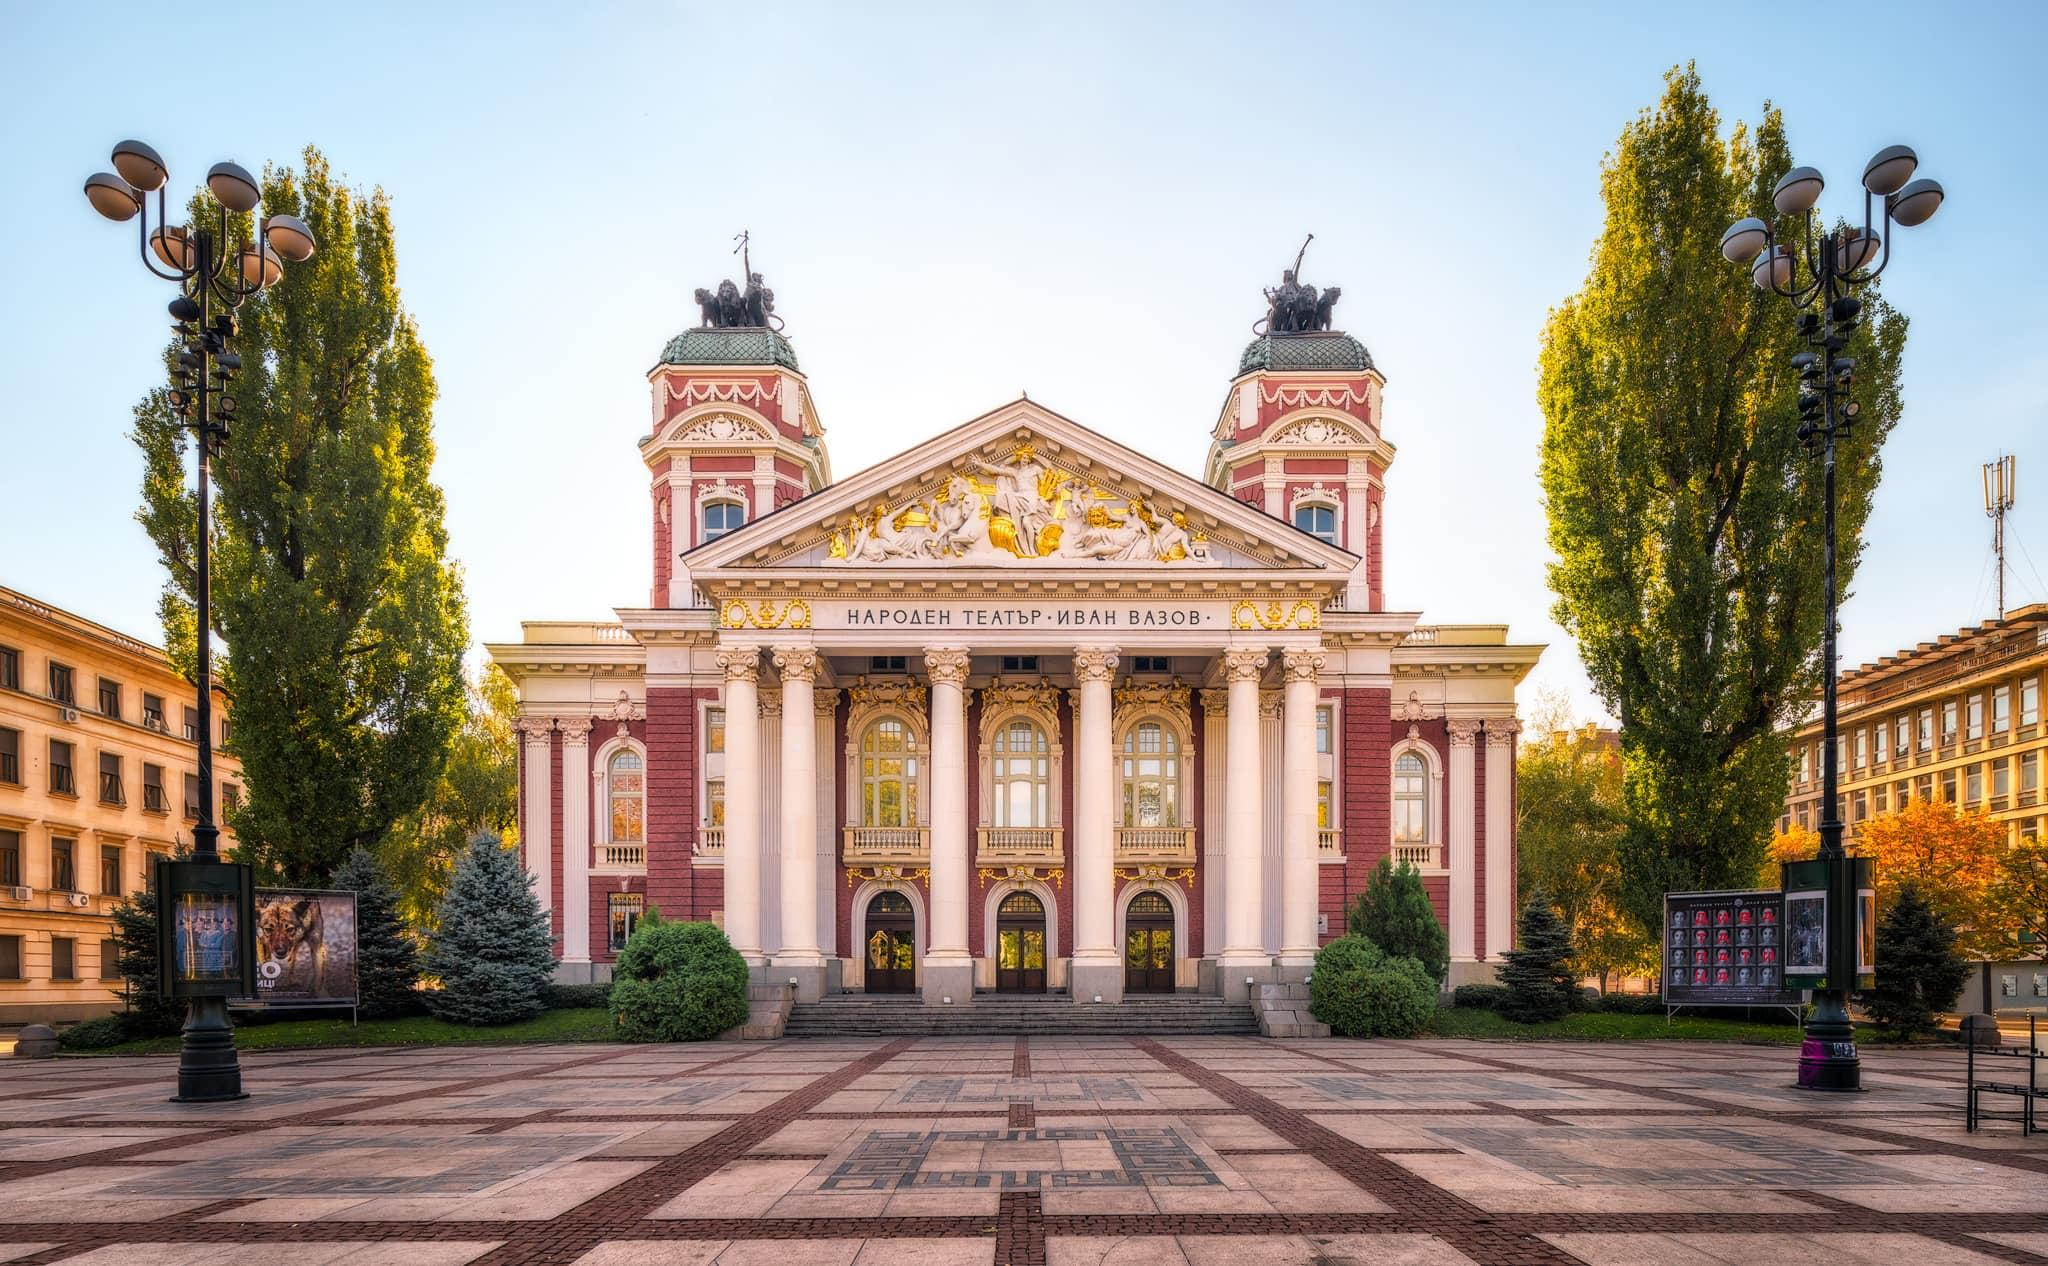 the square in front of Vasov theater, a popular Sofia sightseeing location